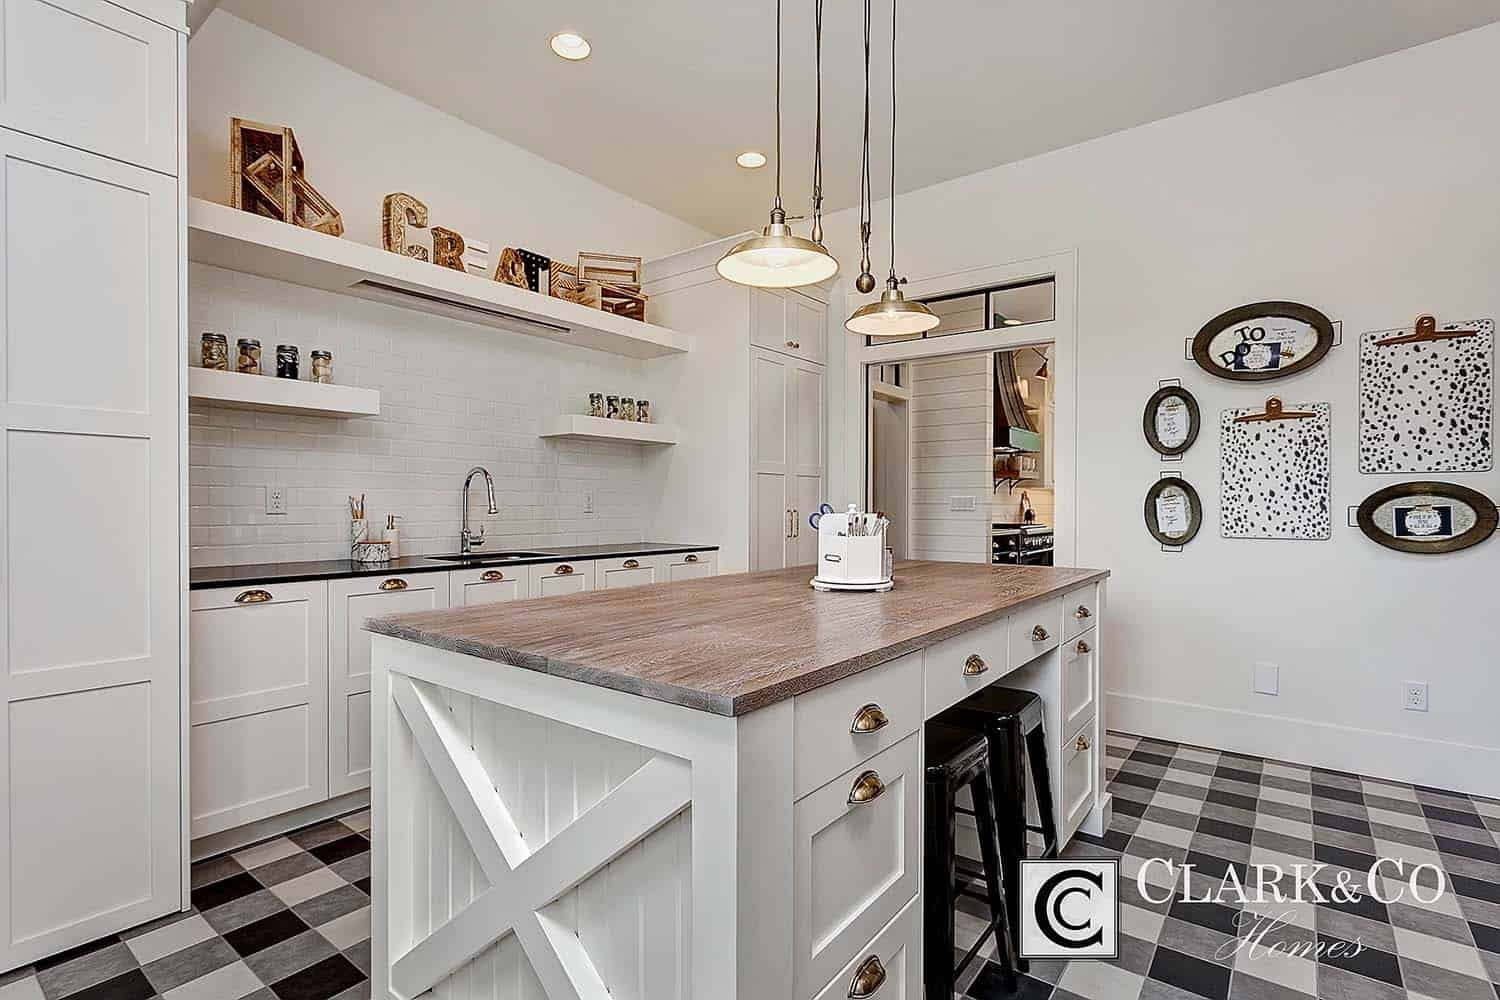 Modern Farmhouse Style-Clark and Co Homes-11-1 Kindesign